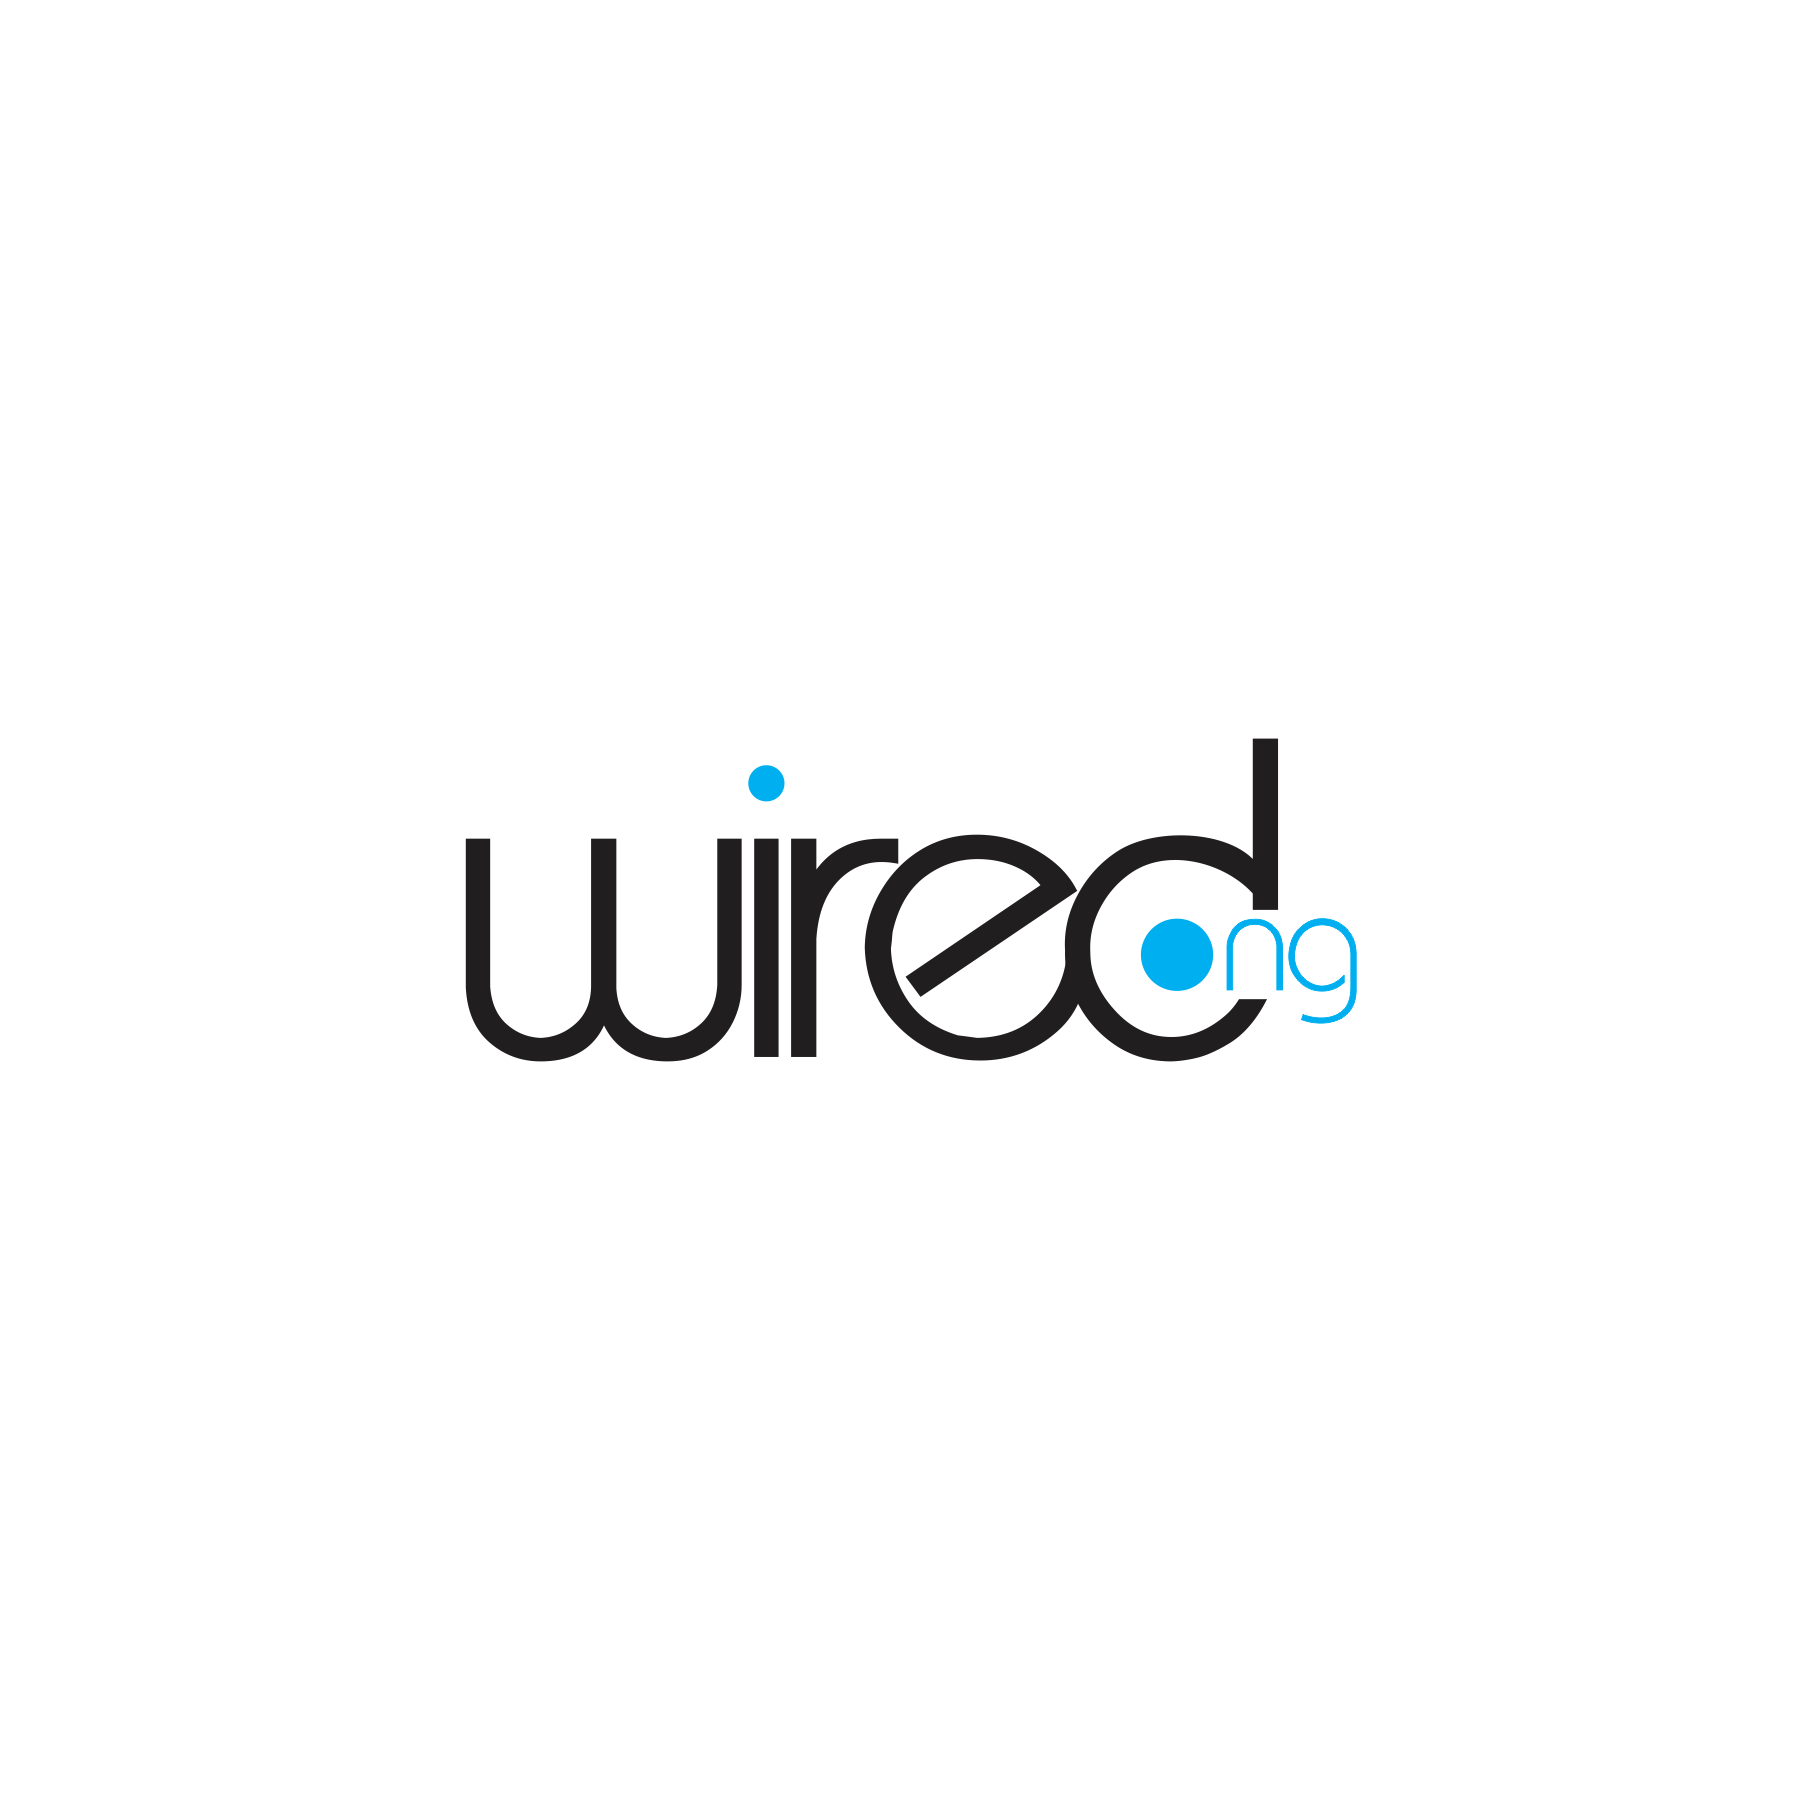 File:Wired-logo.png - Wikimedia Commons